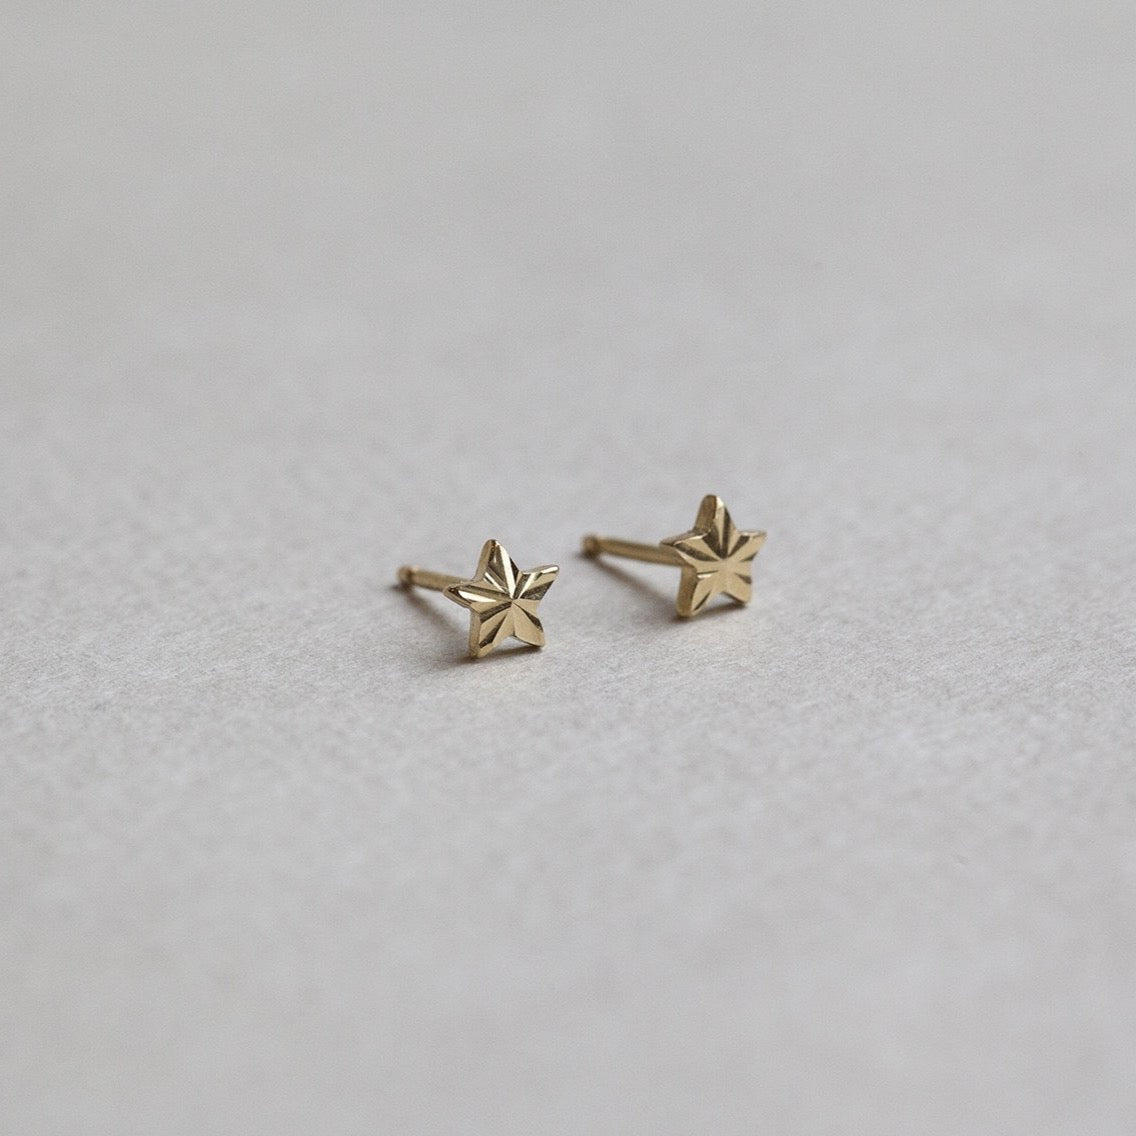 from the same collection - 9 carat gold micro star stud earrings also available on feltlondon.com